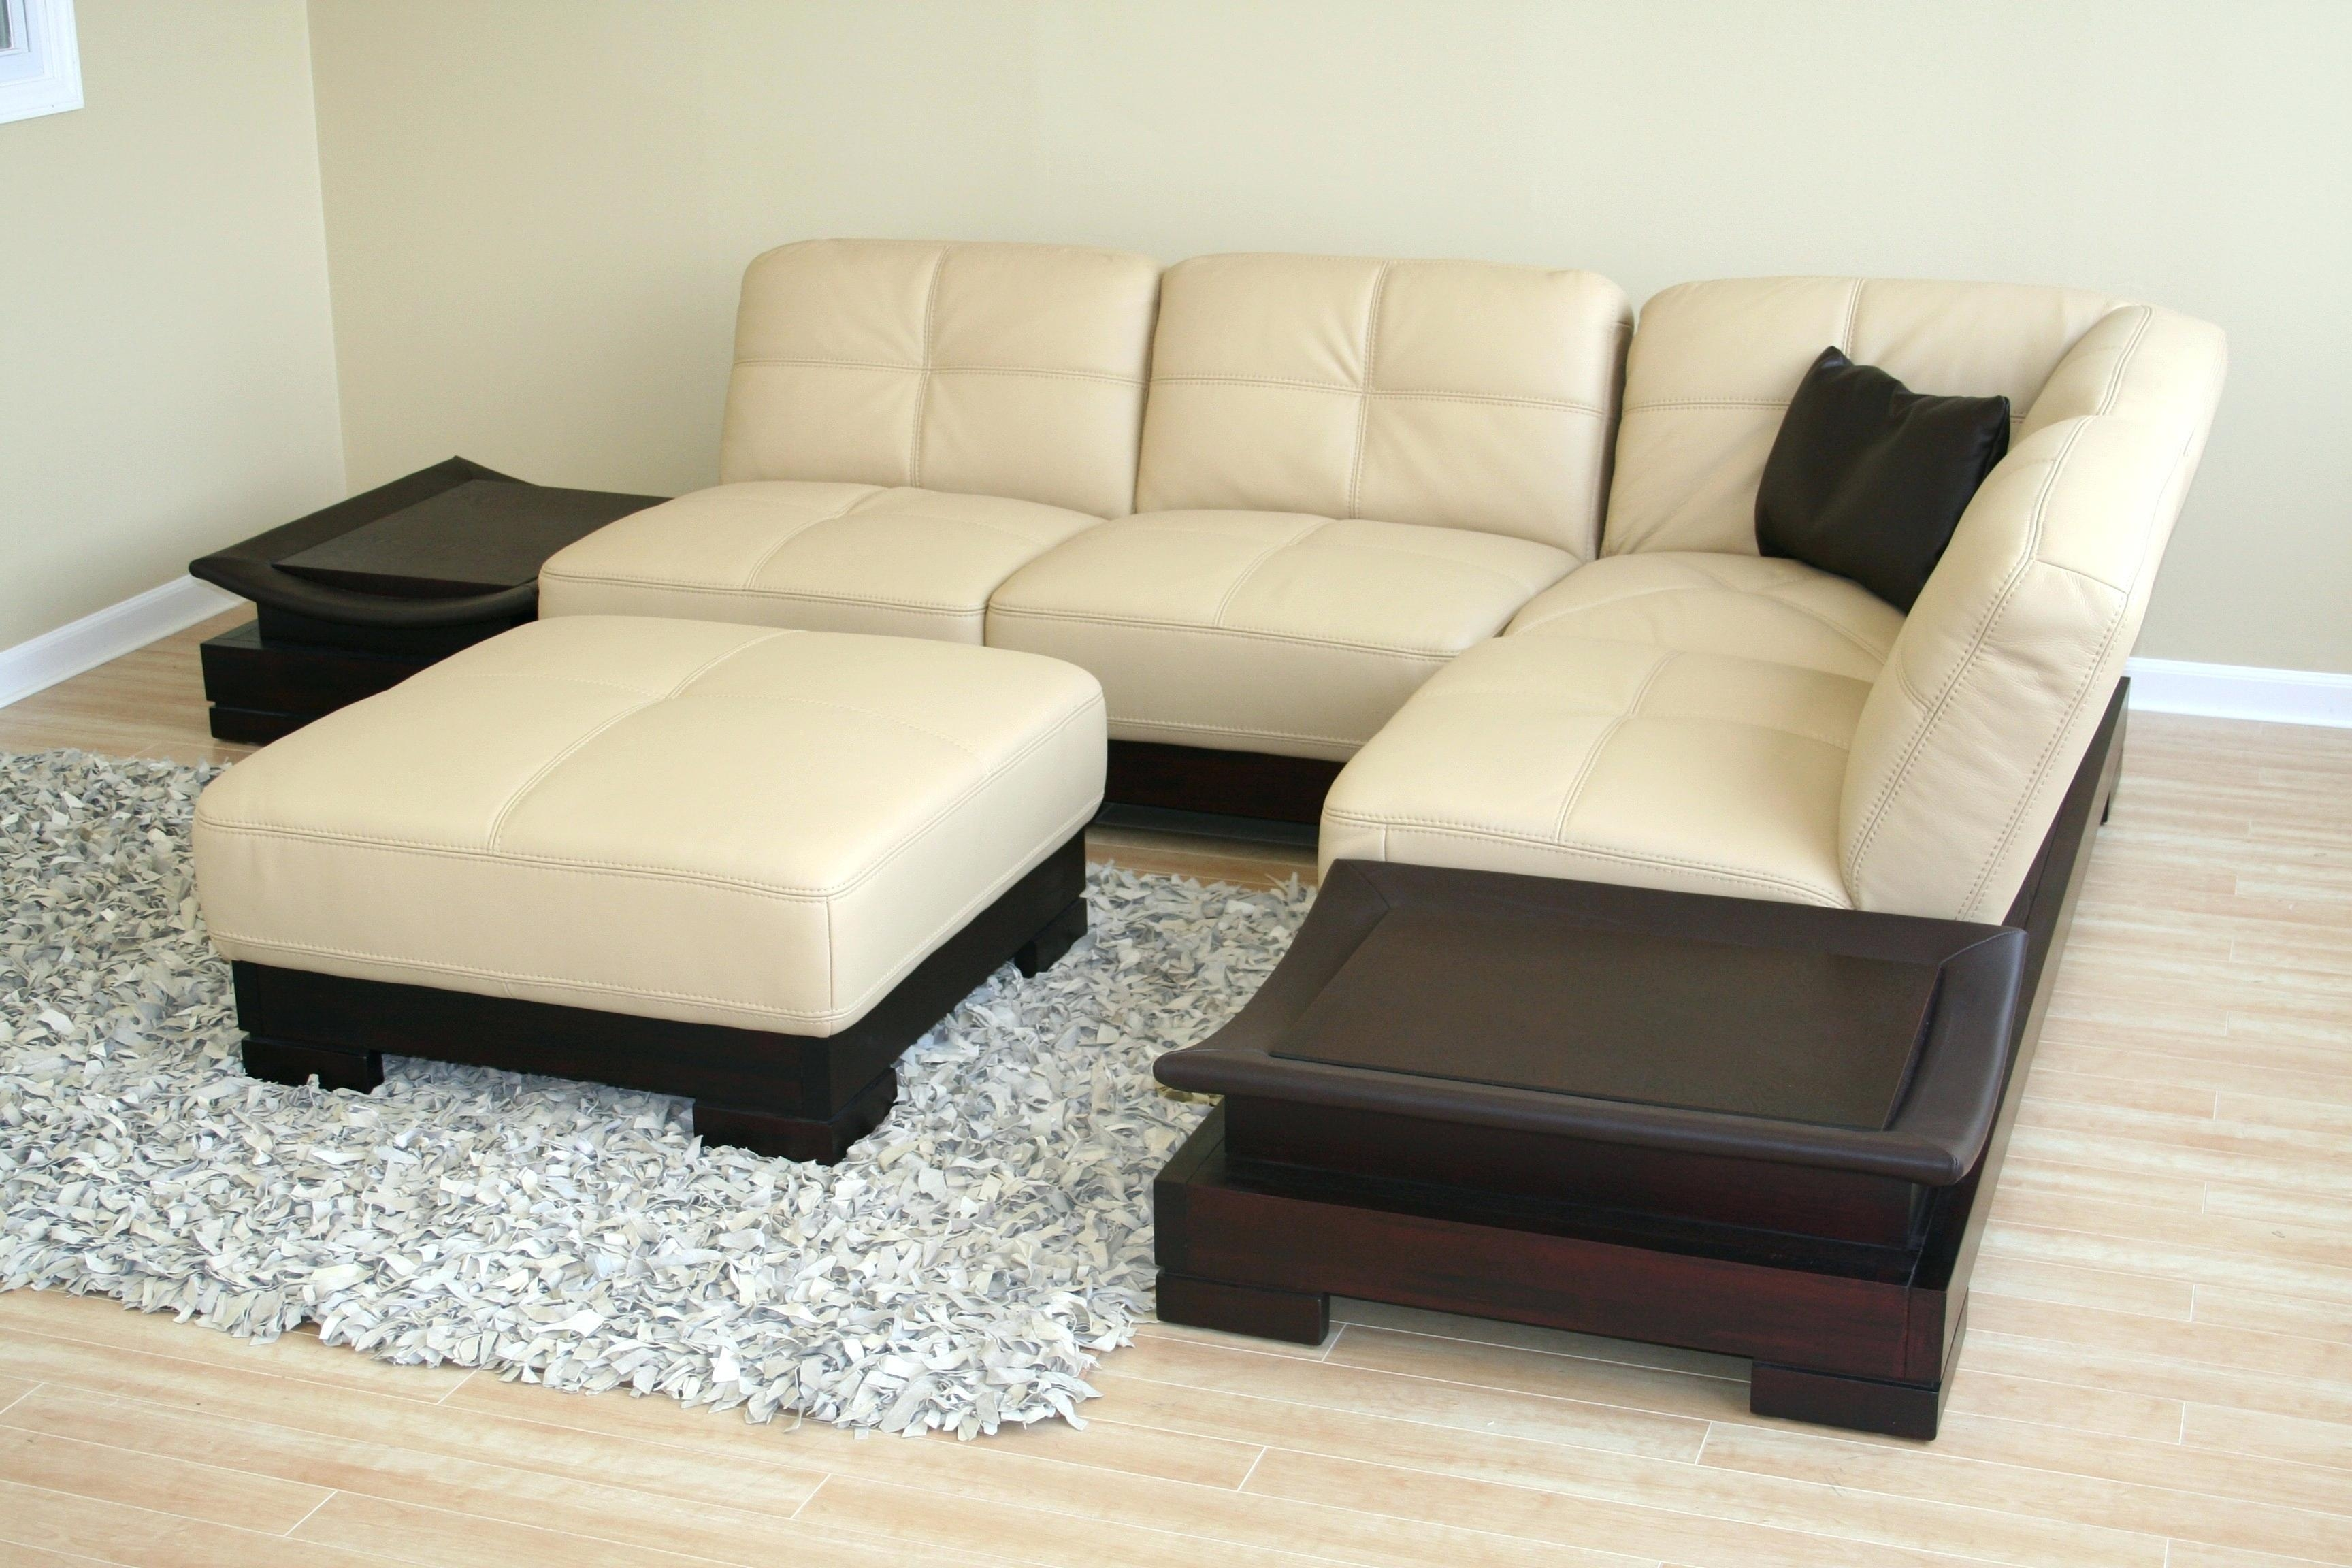 Cream Leather Couches Sale Sectional Sofa For Decorating Ideas Inside Cream Sectional Leather Sofas (View 20 of 22)